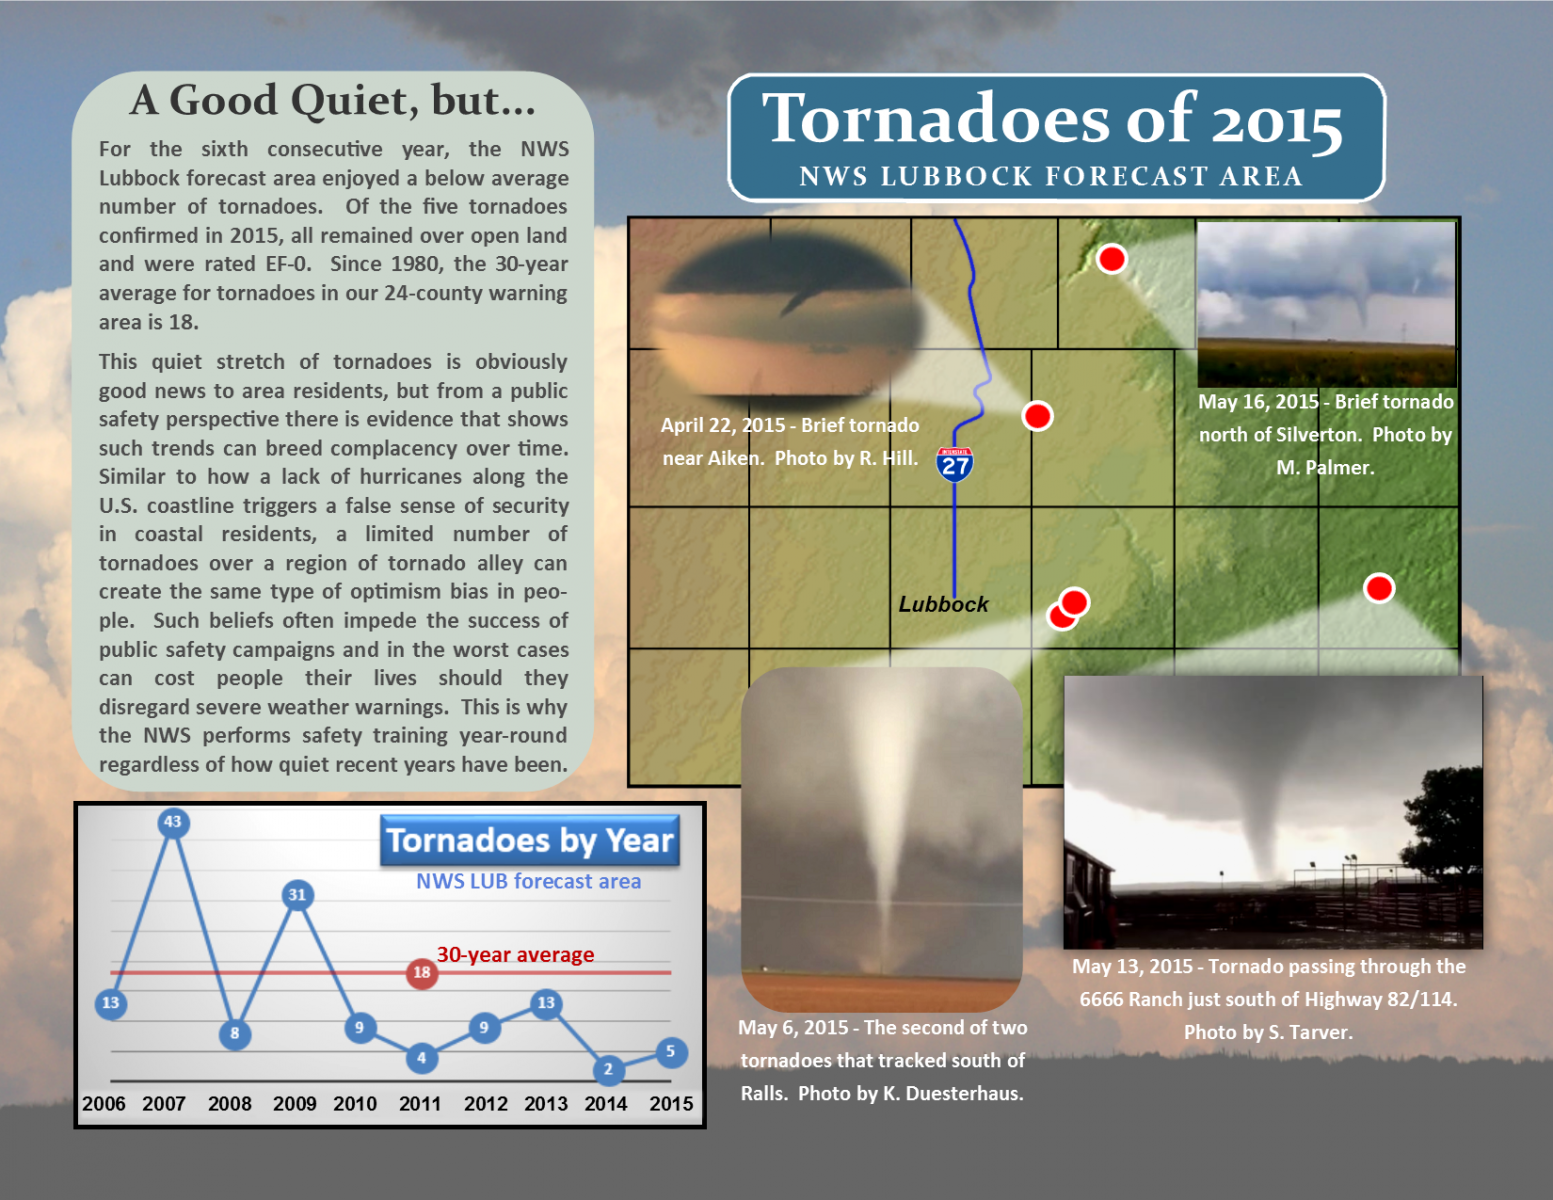 Graphic showing the tornadoes that impacted the Lubbock CWA in 2015.